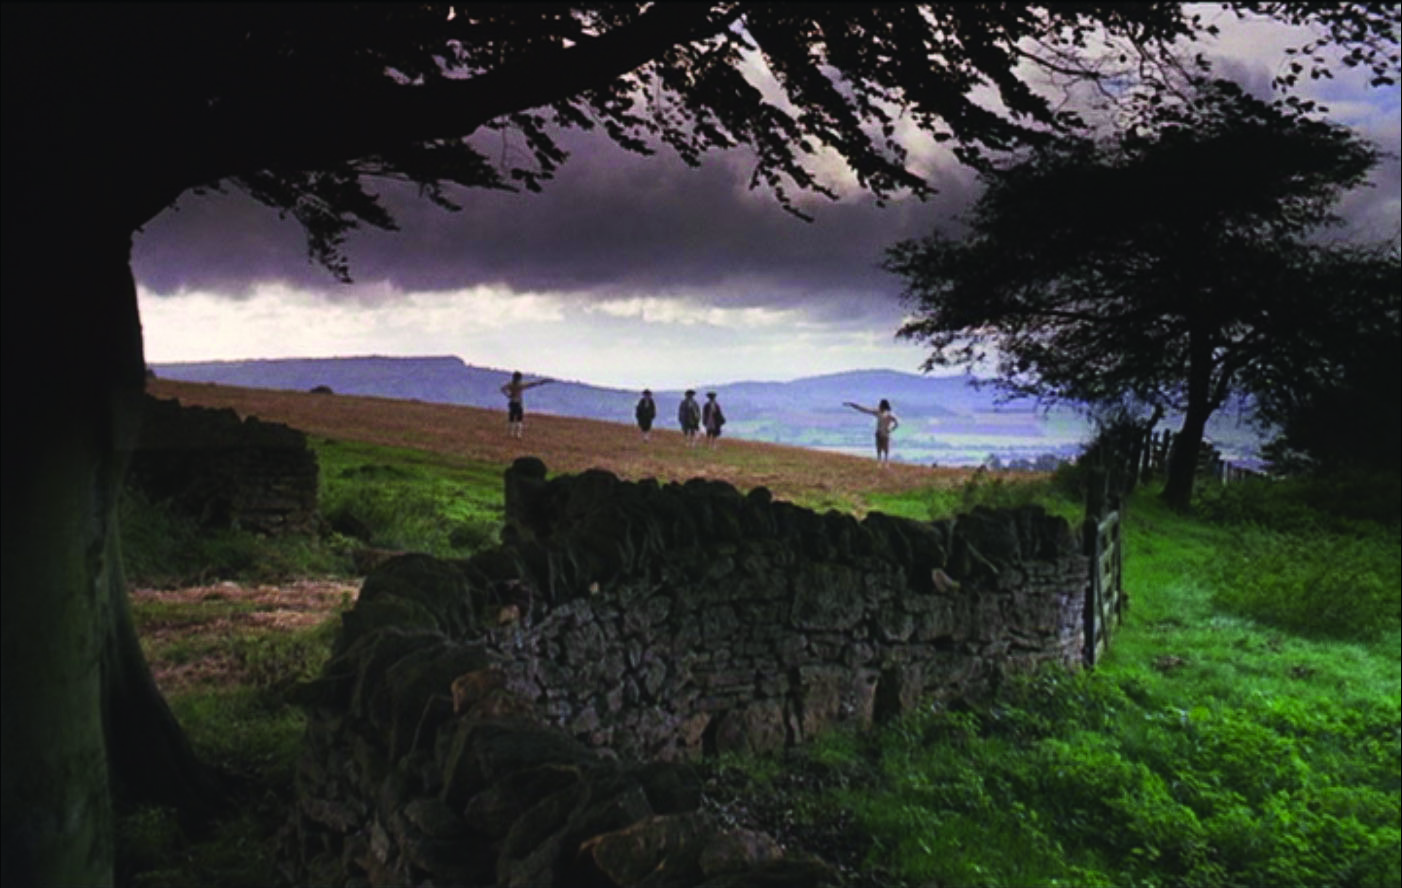 The father of Redmond Barry engages in a duel at the start of the film, framed by   mountains and a crumbling stone wall.